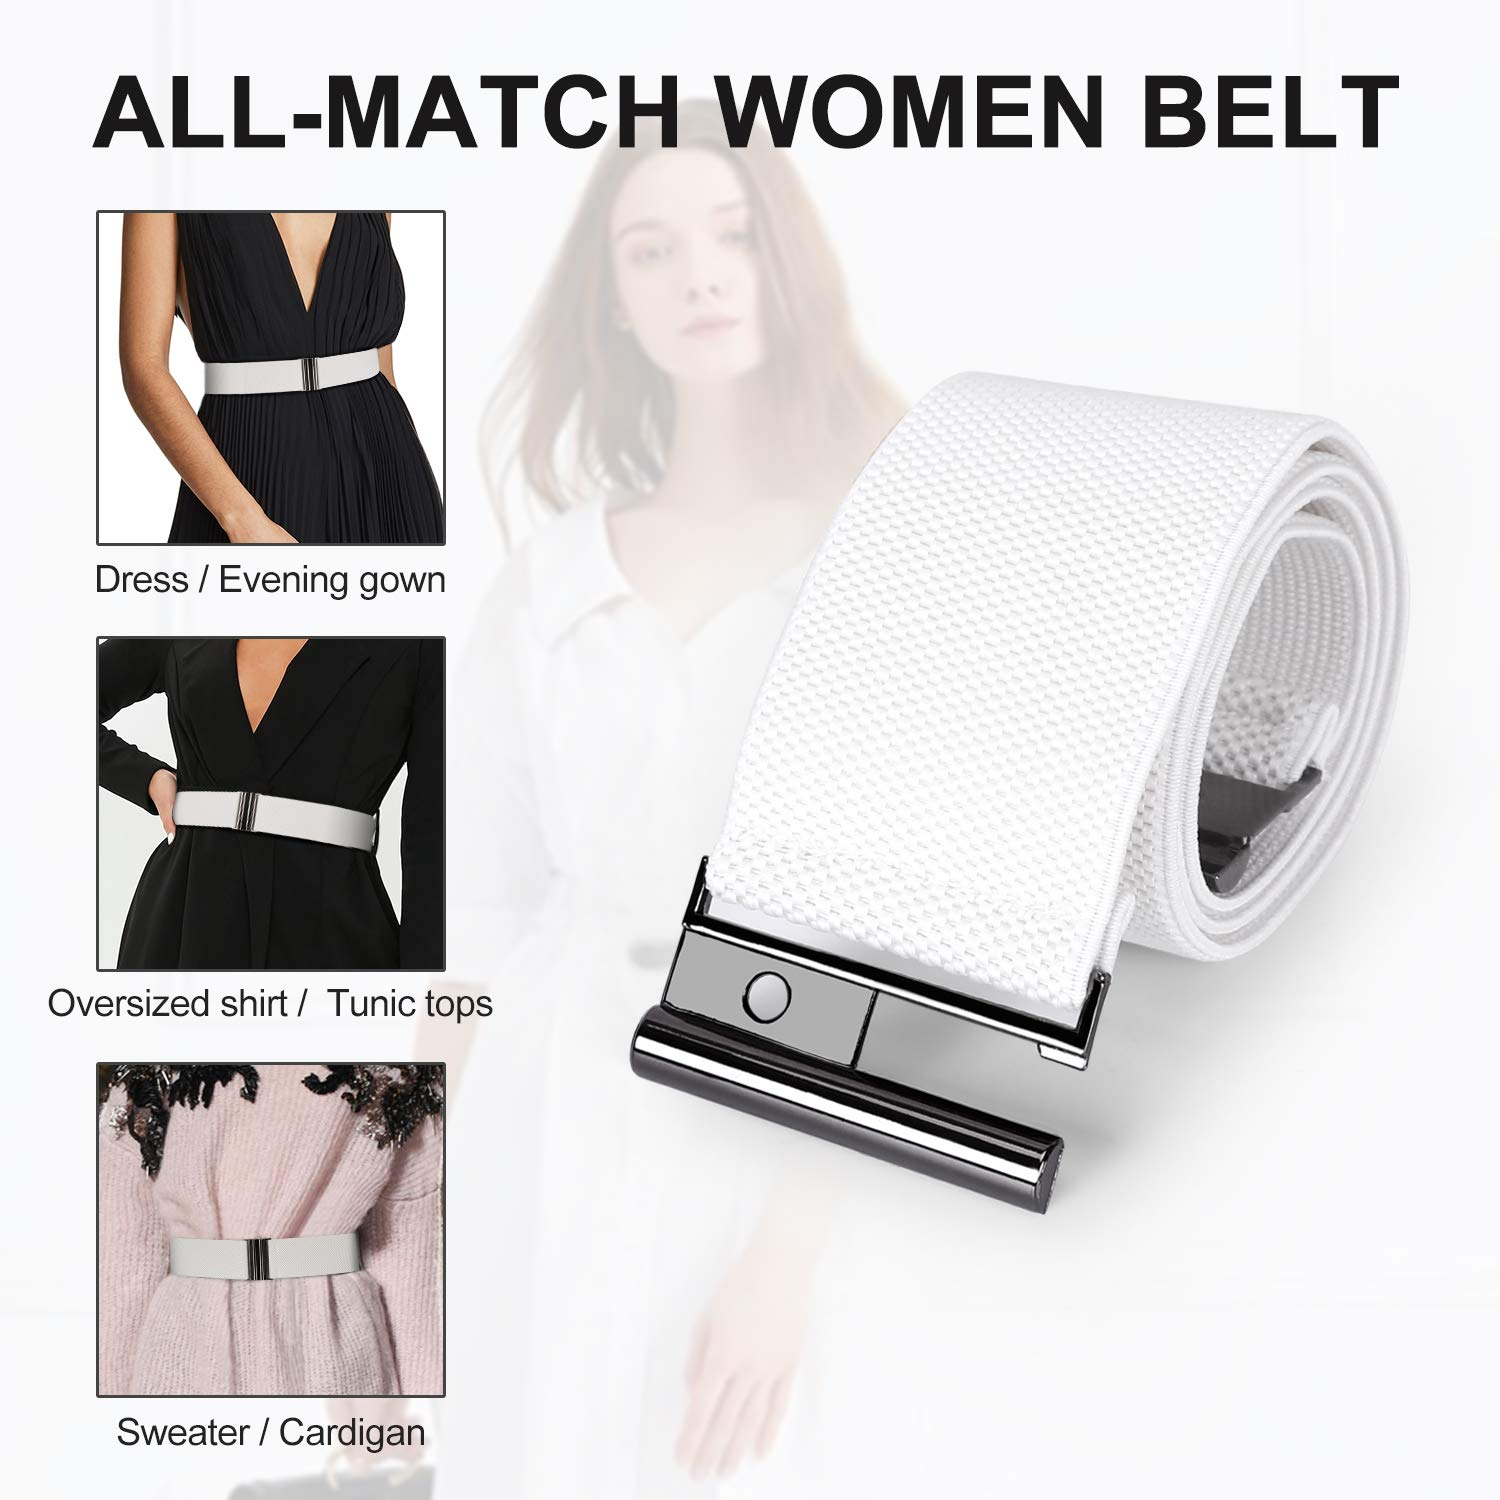 Wide Elastic Stretchy Belts for Women - Trimmer Stretch Waistband Retro Waist Belt White by Whippy